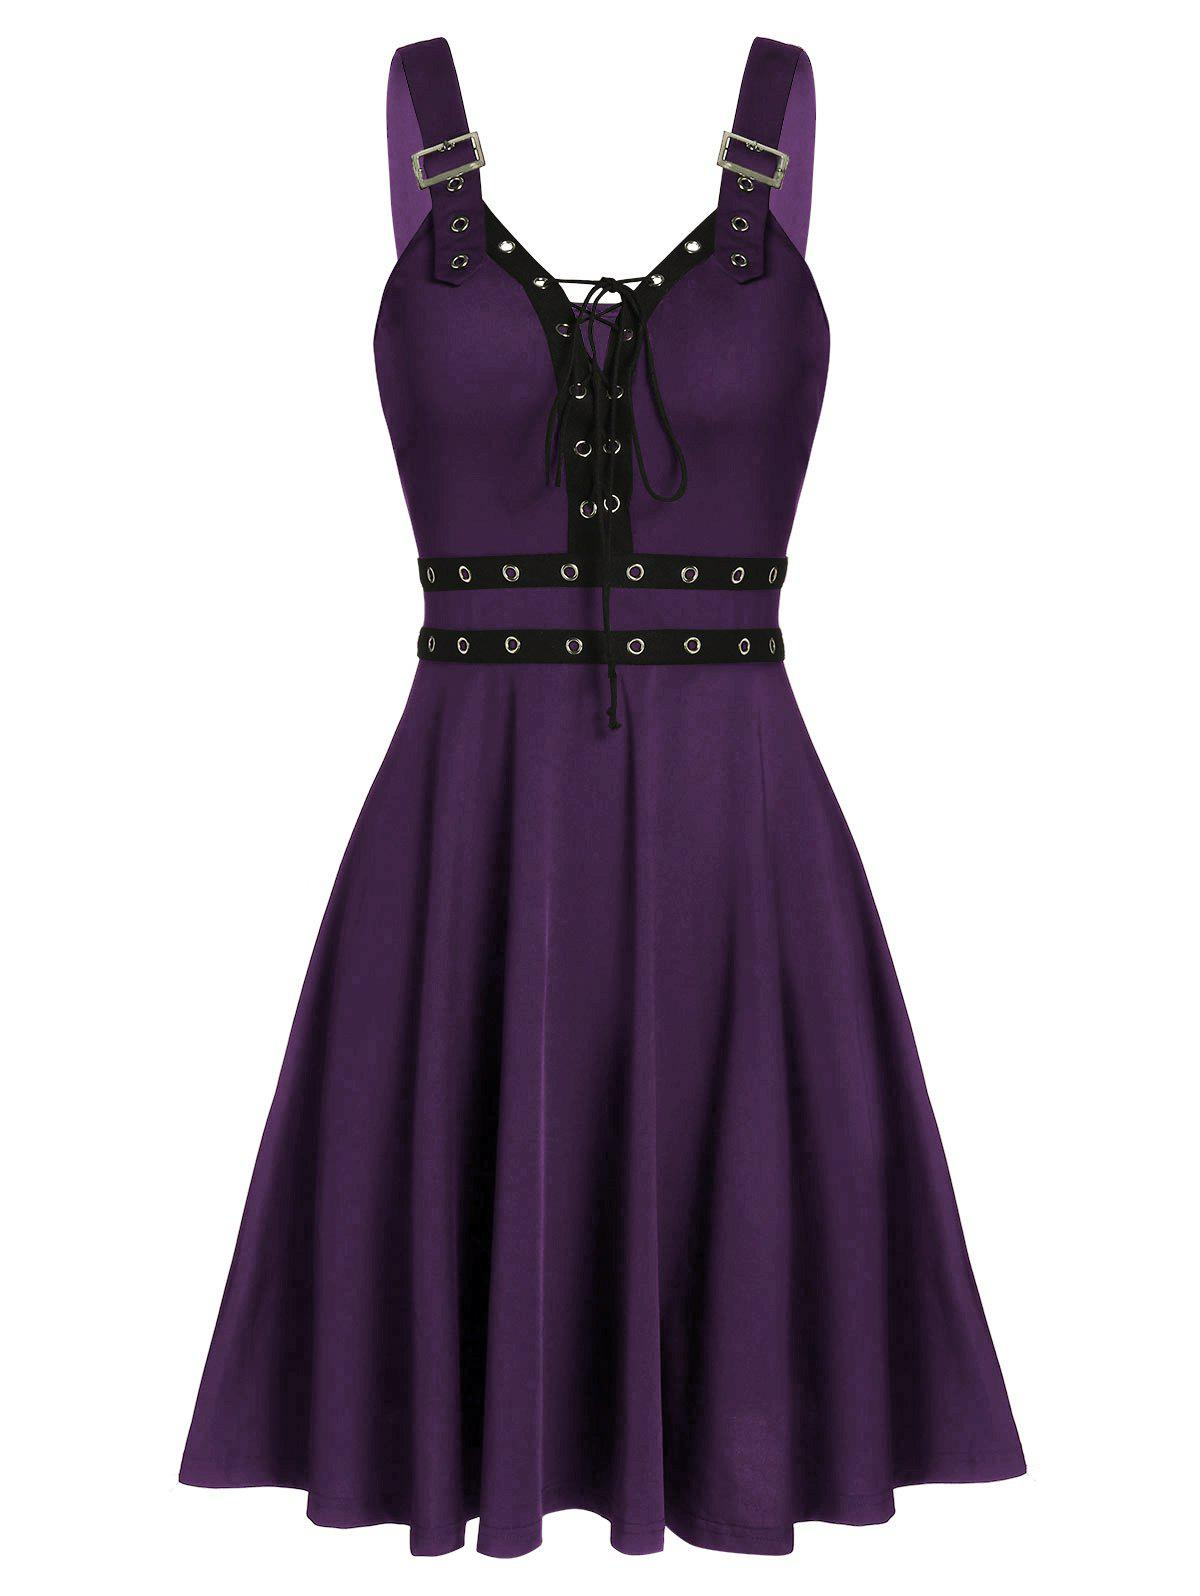 Lace Up Solid Fit And Flare Gothic Dress - PURPLE IRIS S